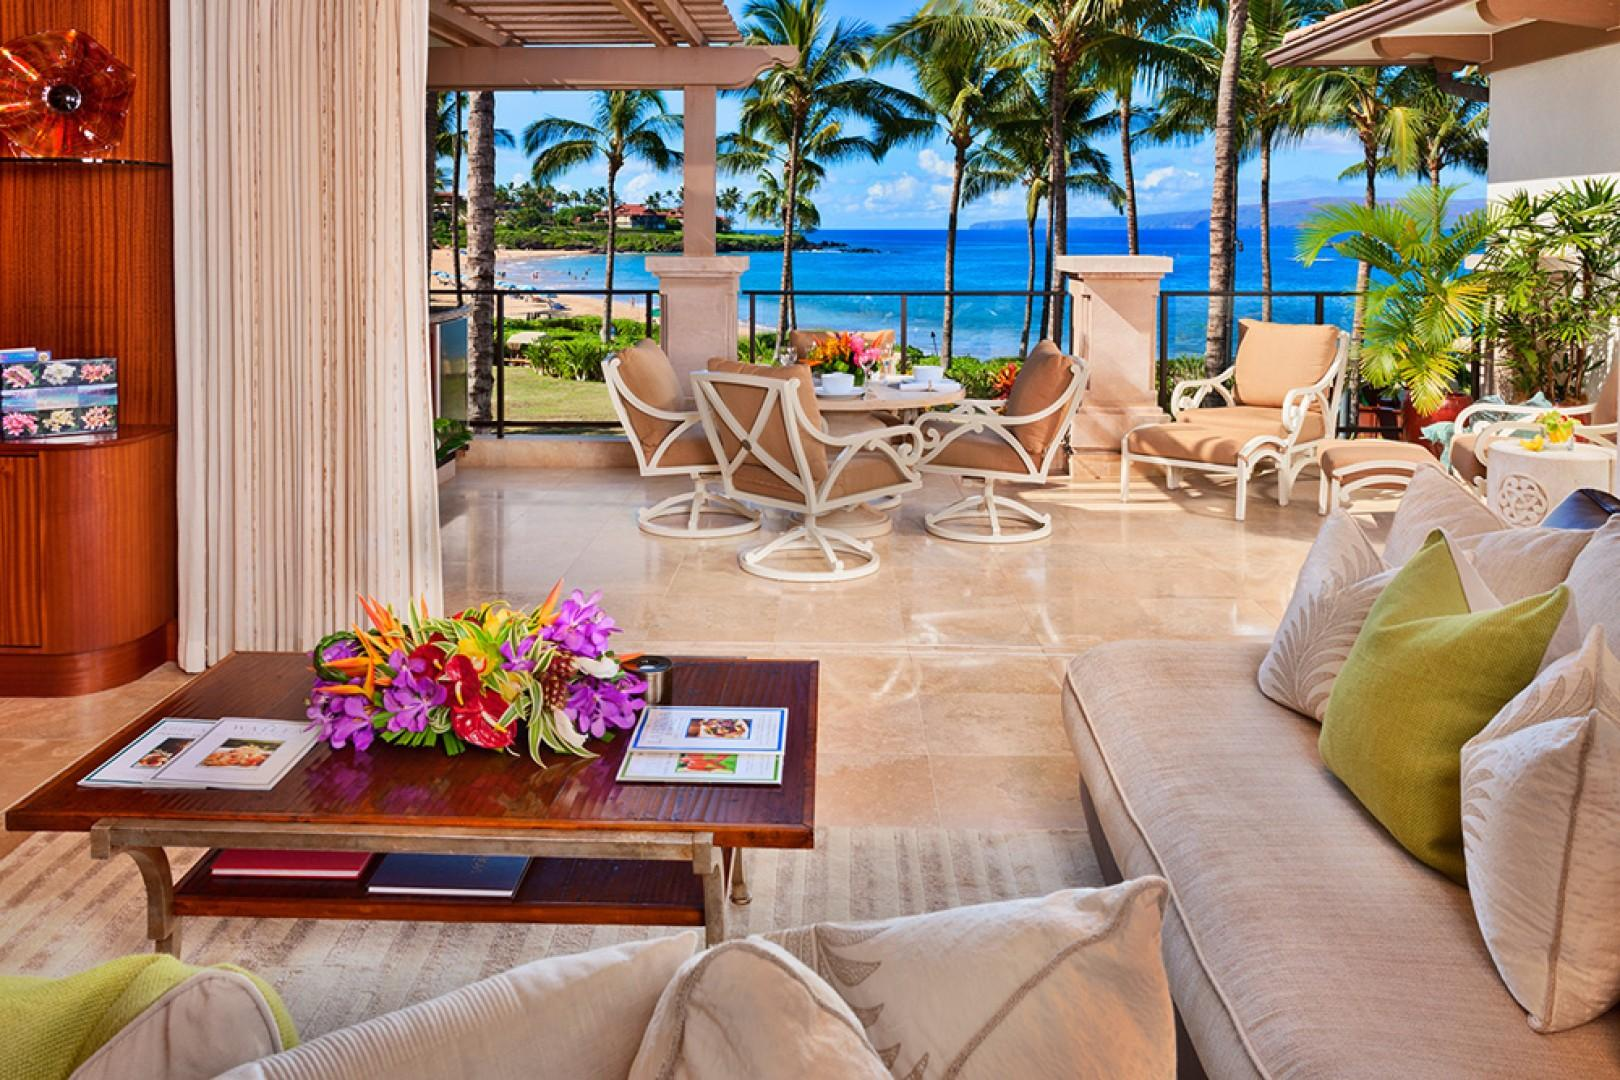 The Beautiful Great Room of A201 Royal Ilima - Looking Towards Wailea Beach. Live Plants, Custom Cabinetry, Down-Filled Furniture, Original Art, Pacific Artifacts and Gallery-Quality Decor